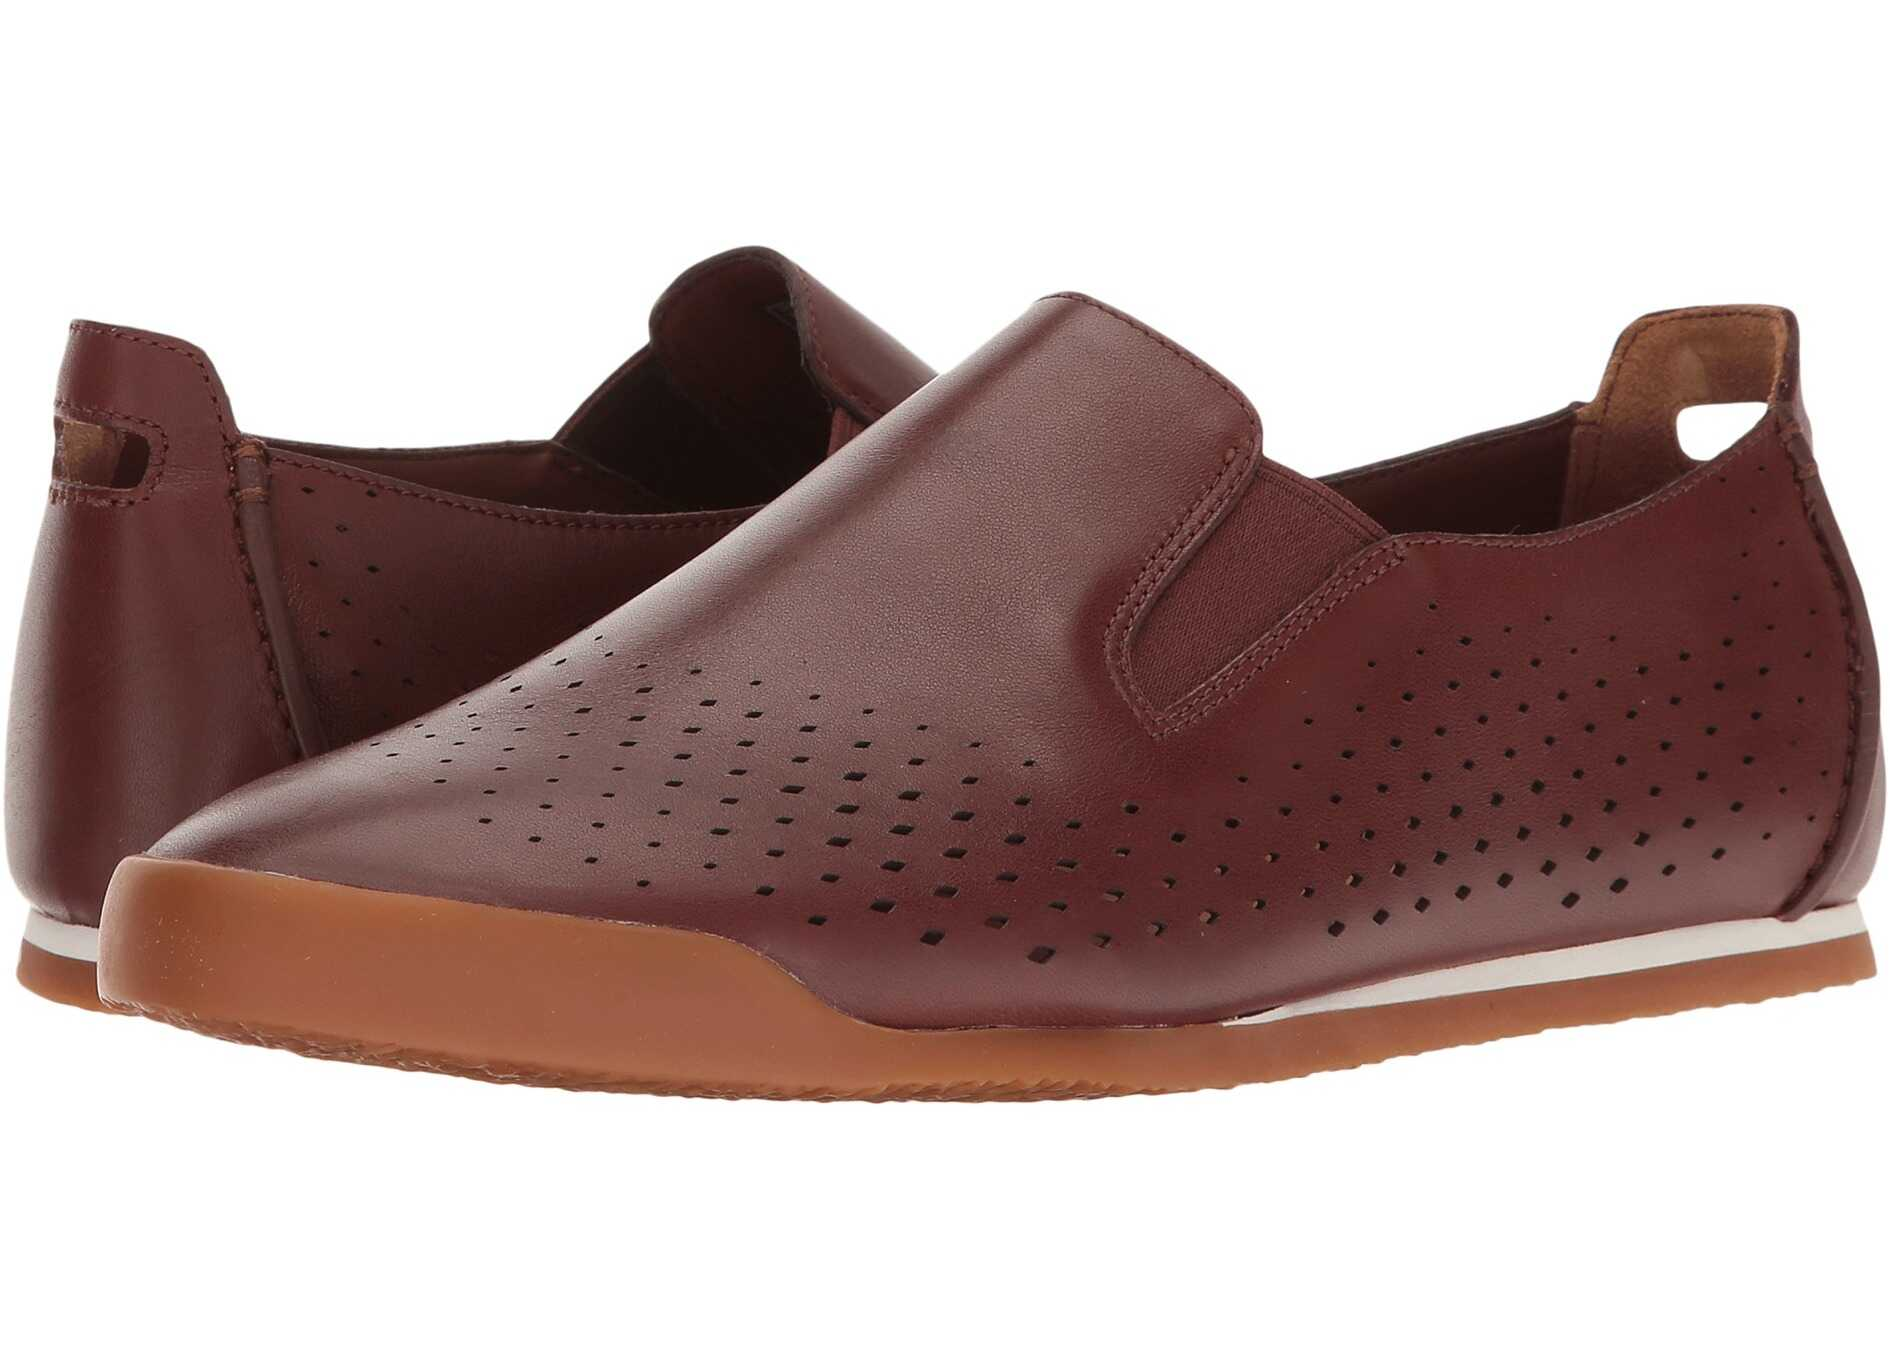 Clarks Siddal Step Chestnut Leather